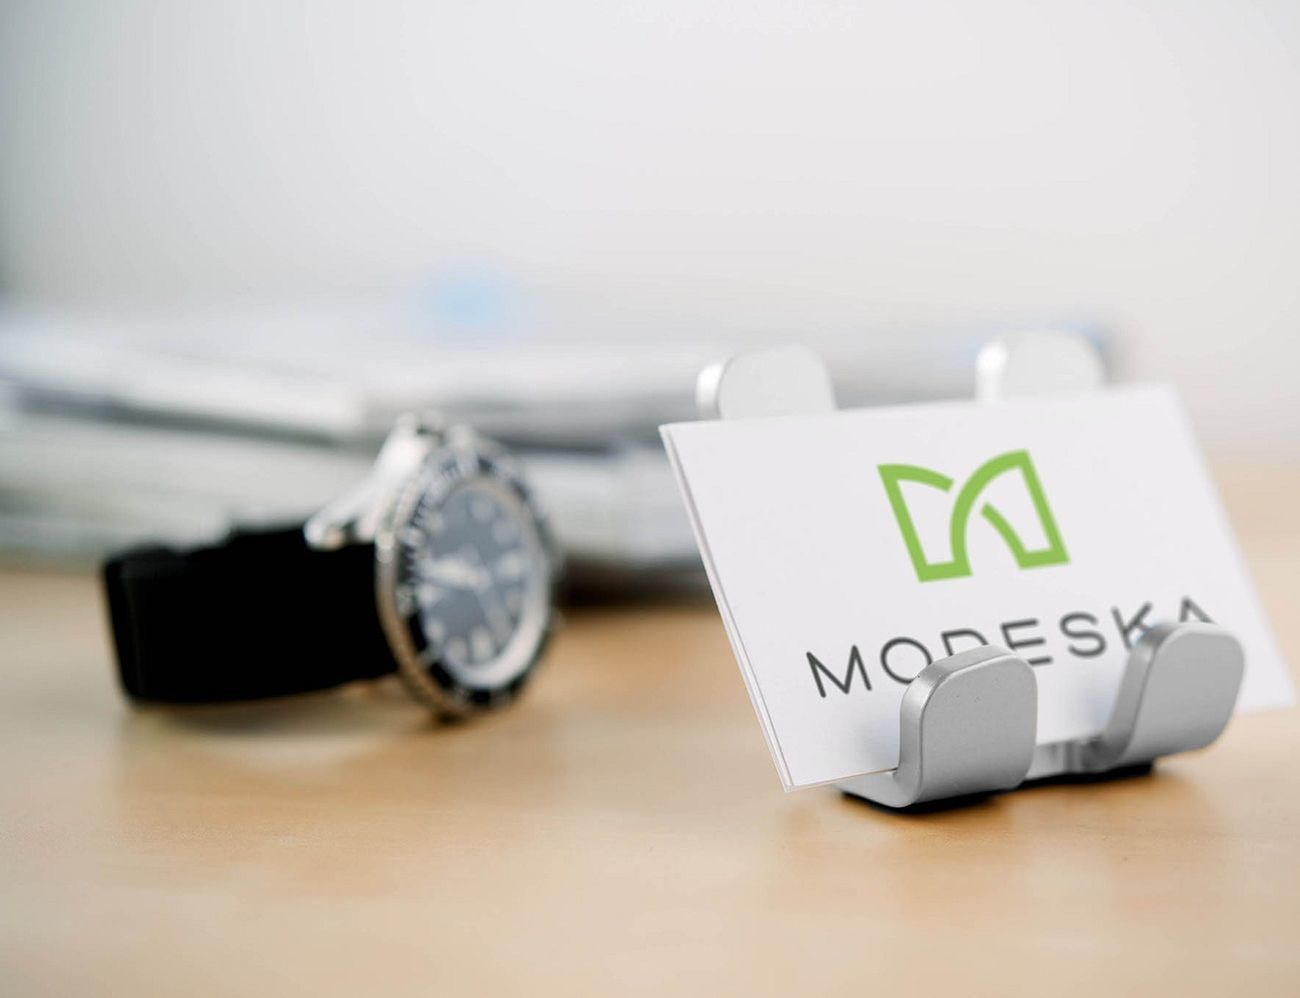 Modeska+%2F%2F+Modern+Office+Accessories